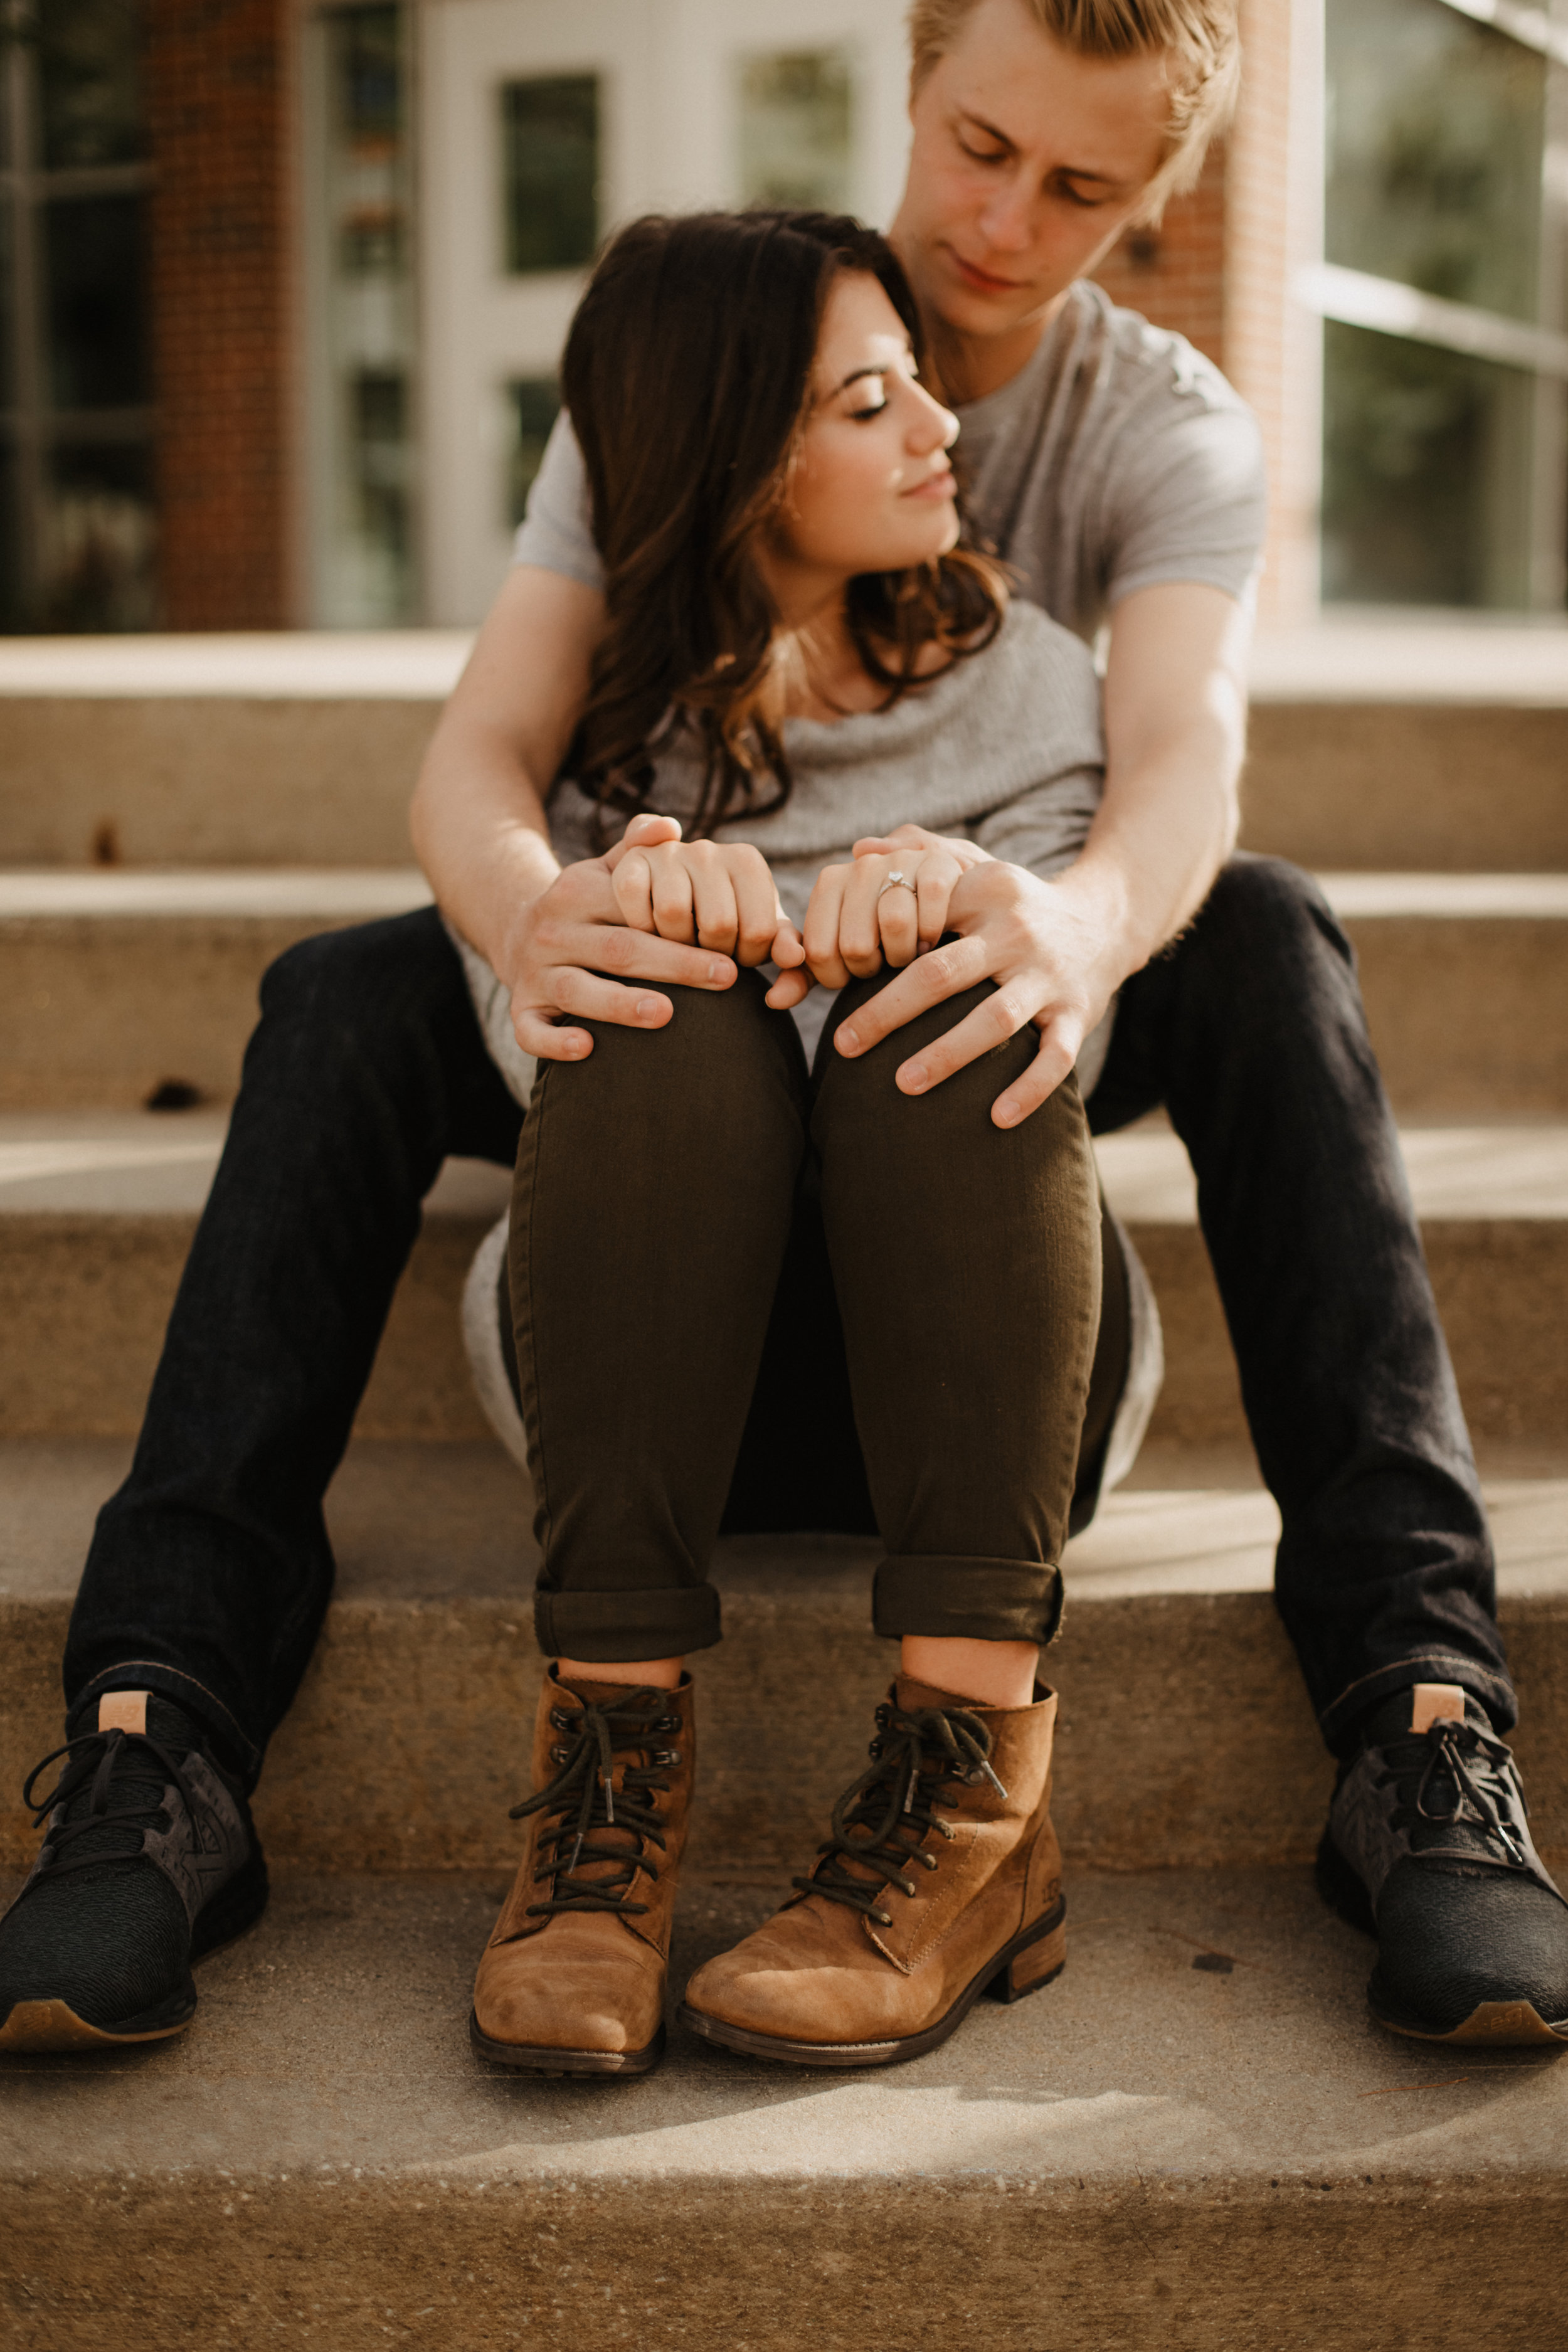 Claire-Rex-Pickar-Engagement-Photography-Collection-179.jpg